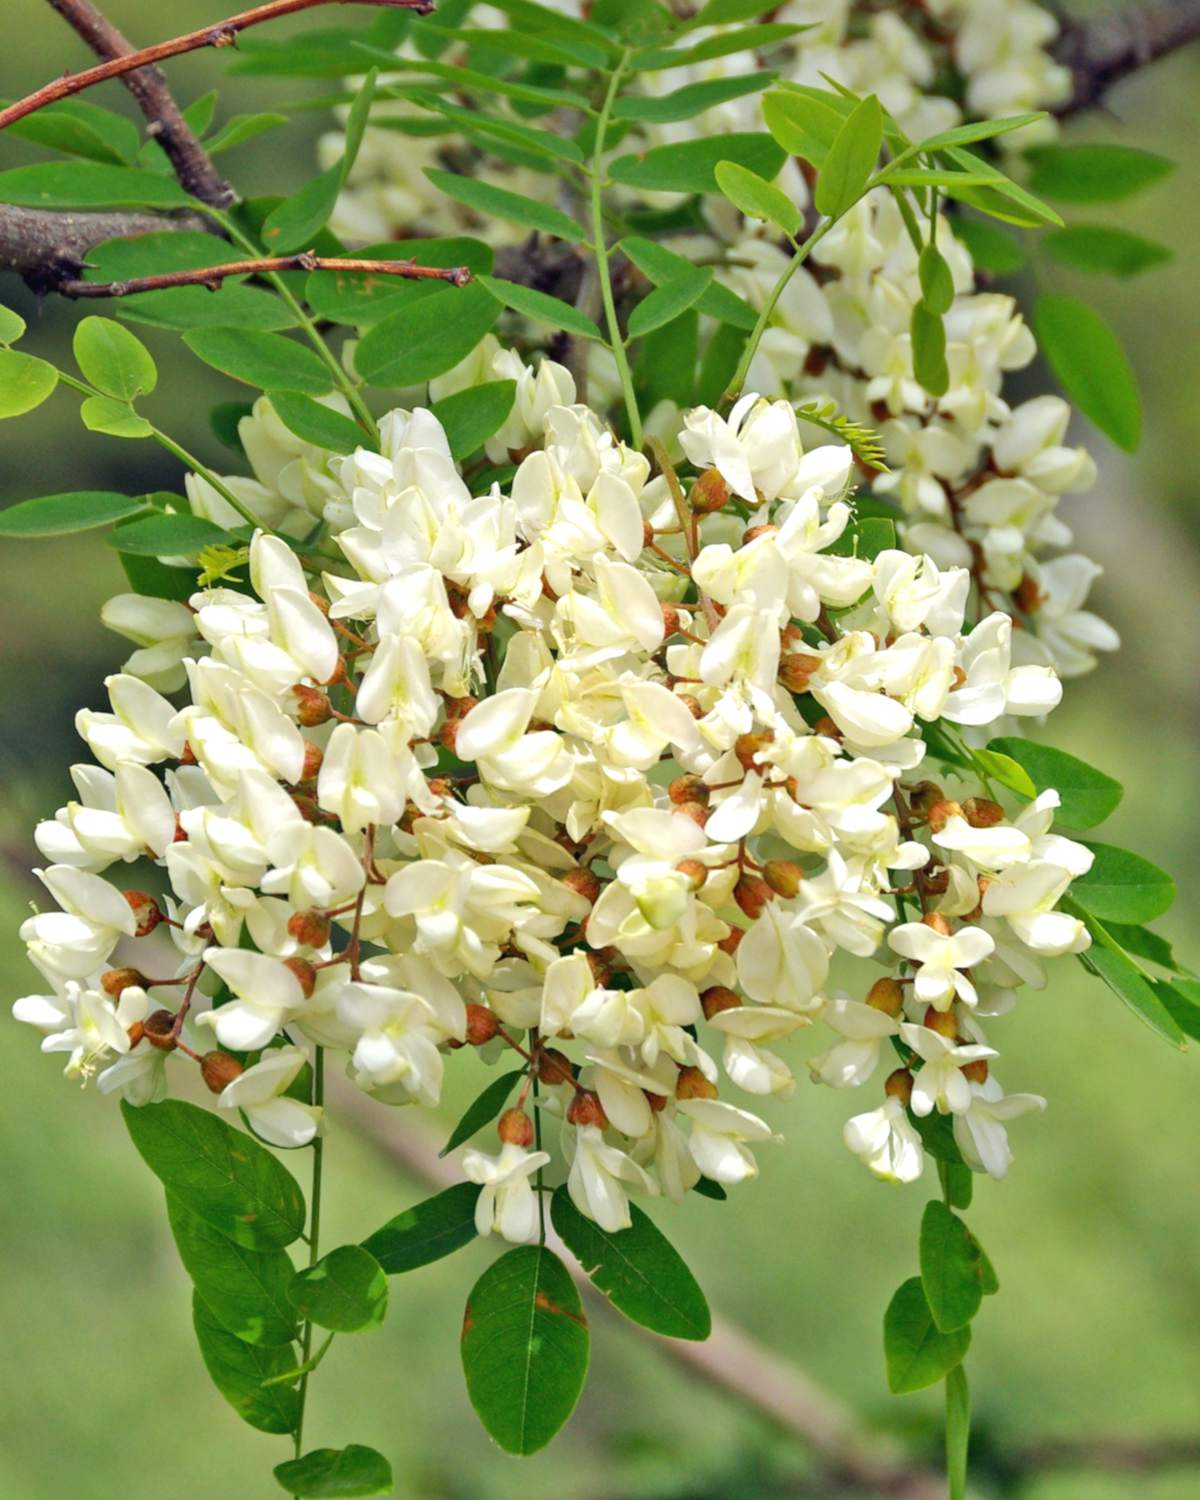 White cluster of black locust flowers